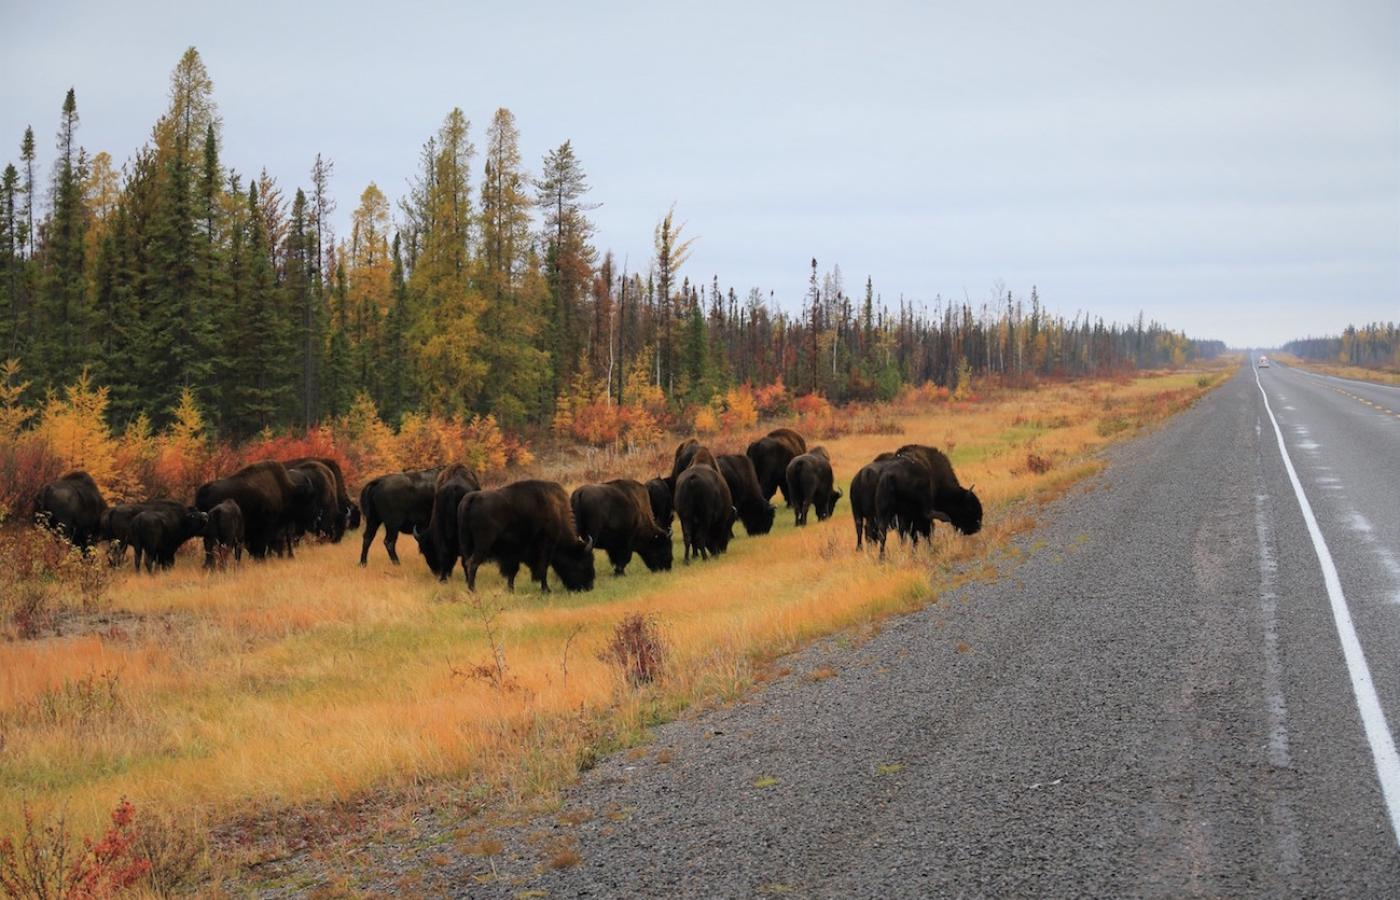 Bison alongside the highway in Canada's Northwest Territories